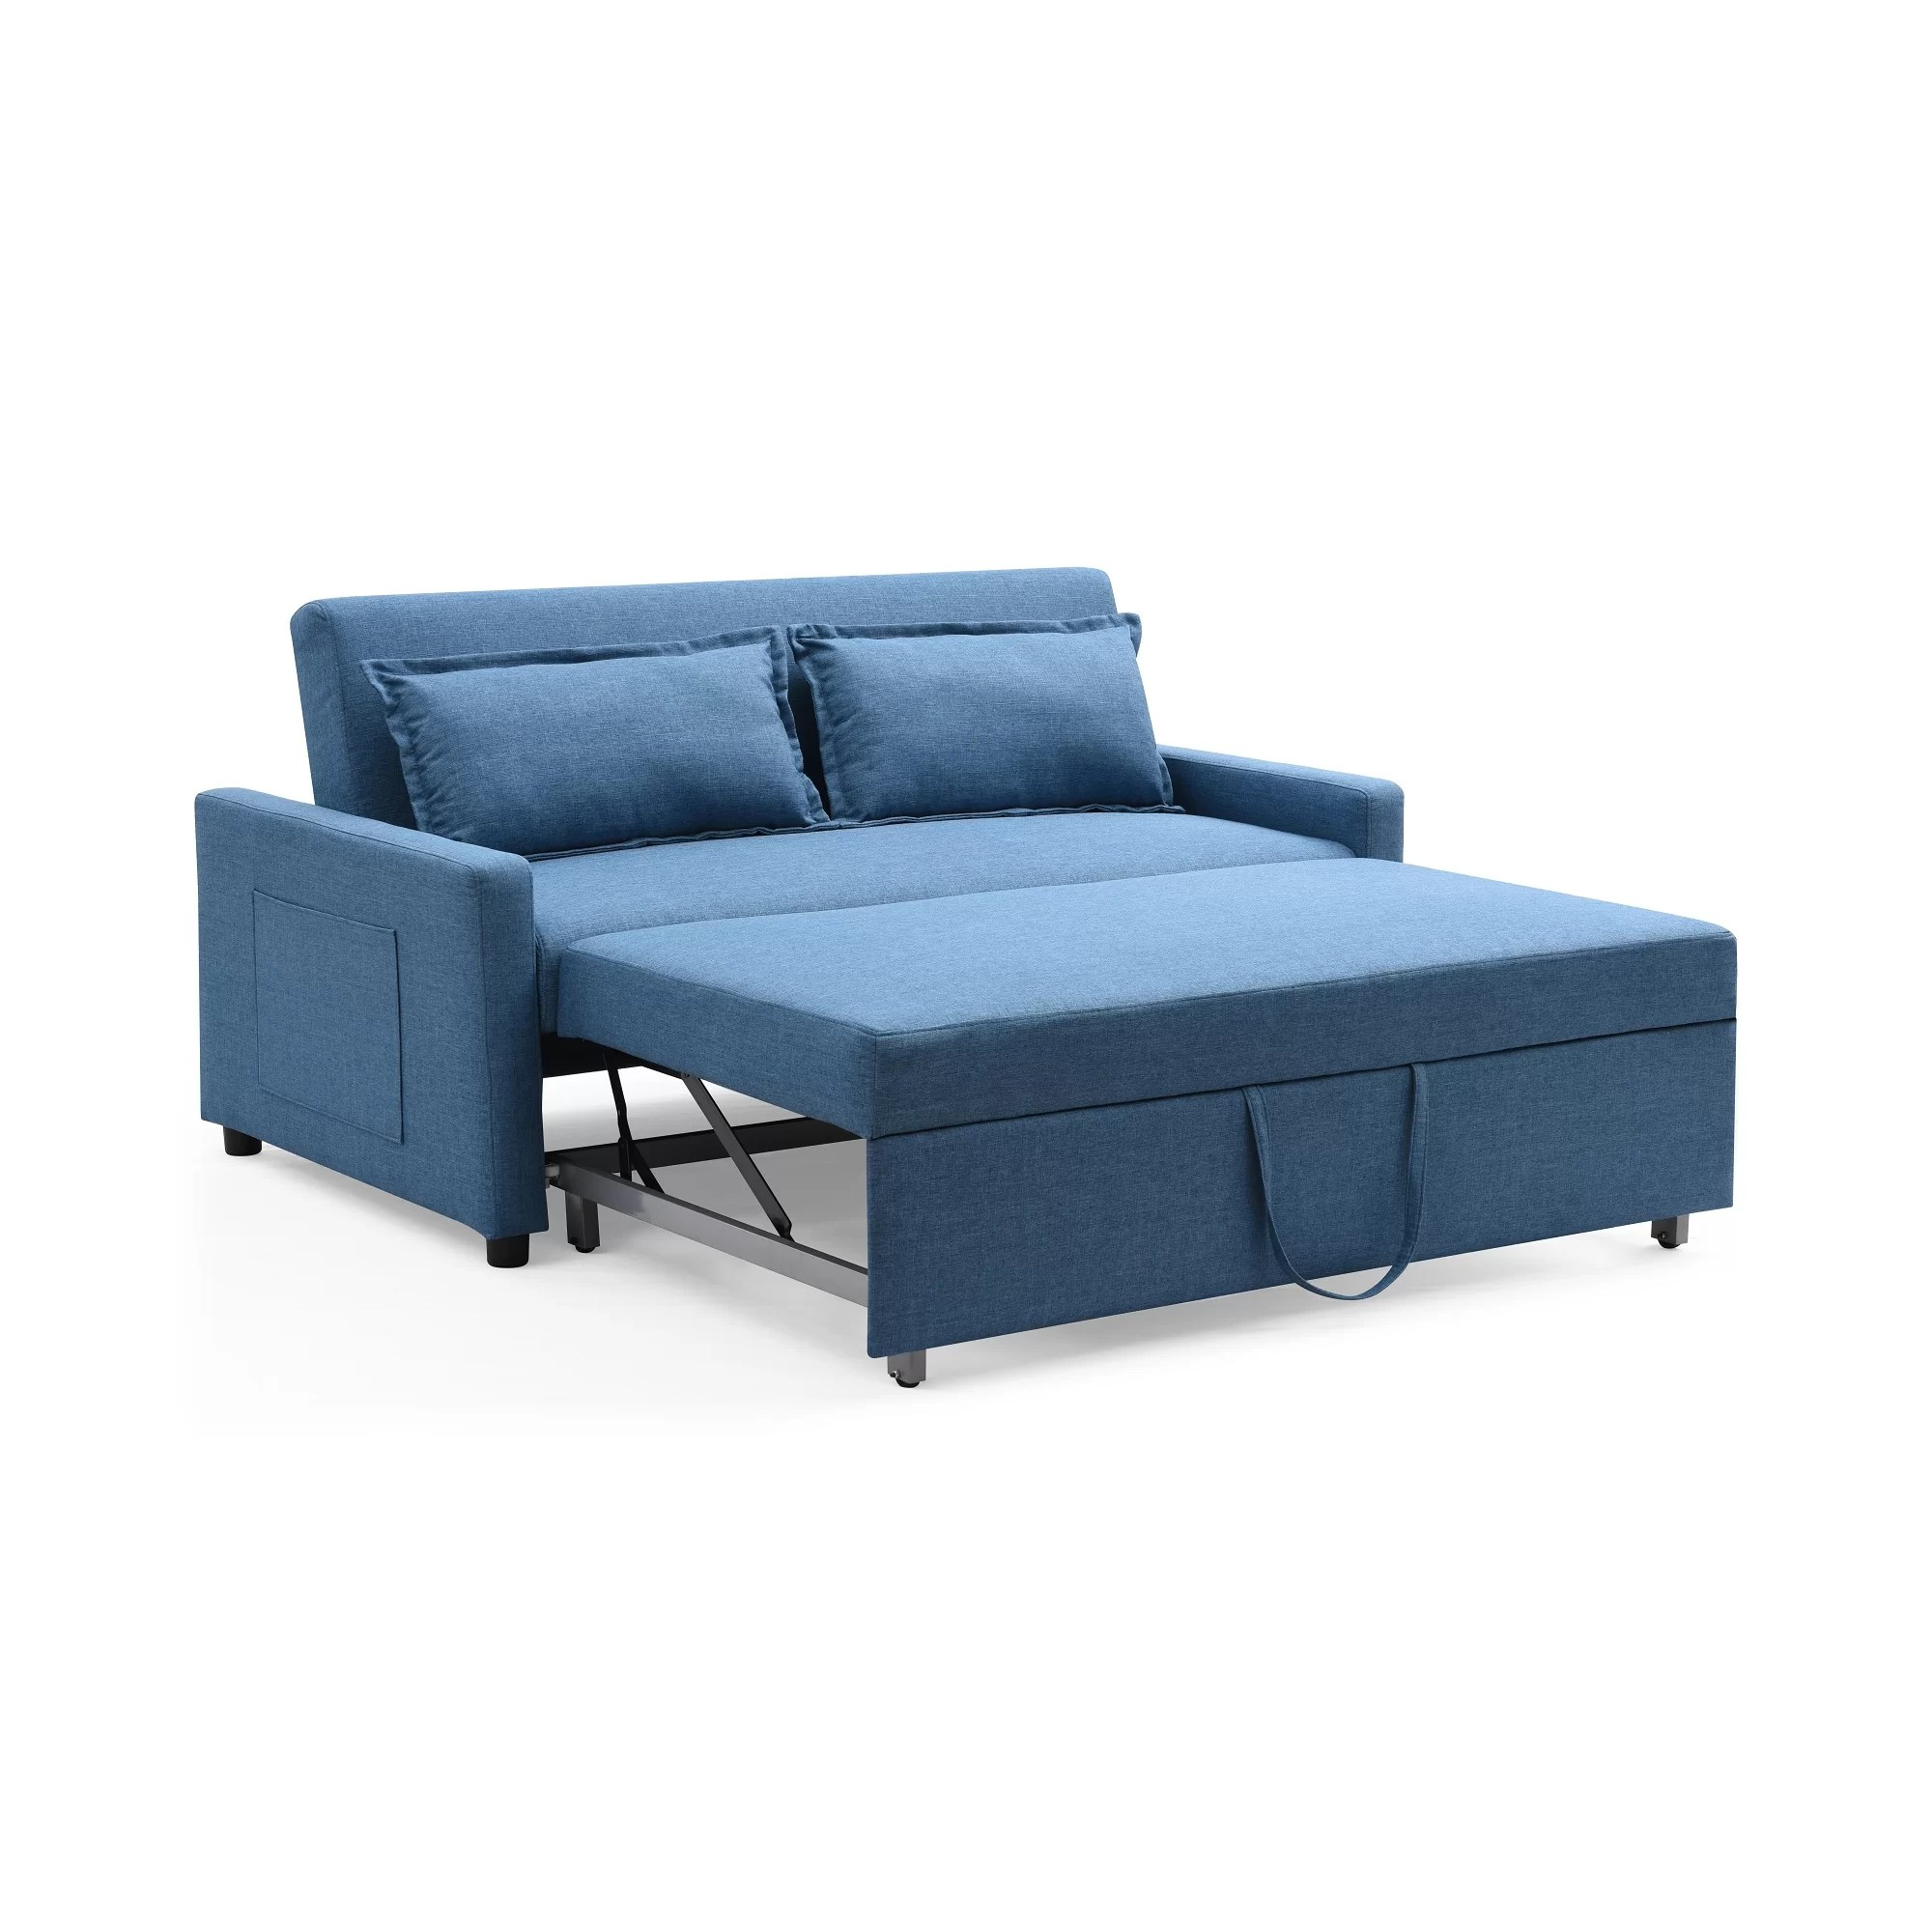 loveseat twin sleeper sofa wicker outdoor table container fabric modern convertible & reviews ...